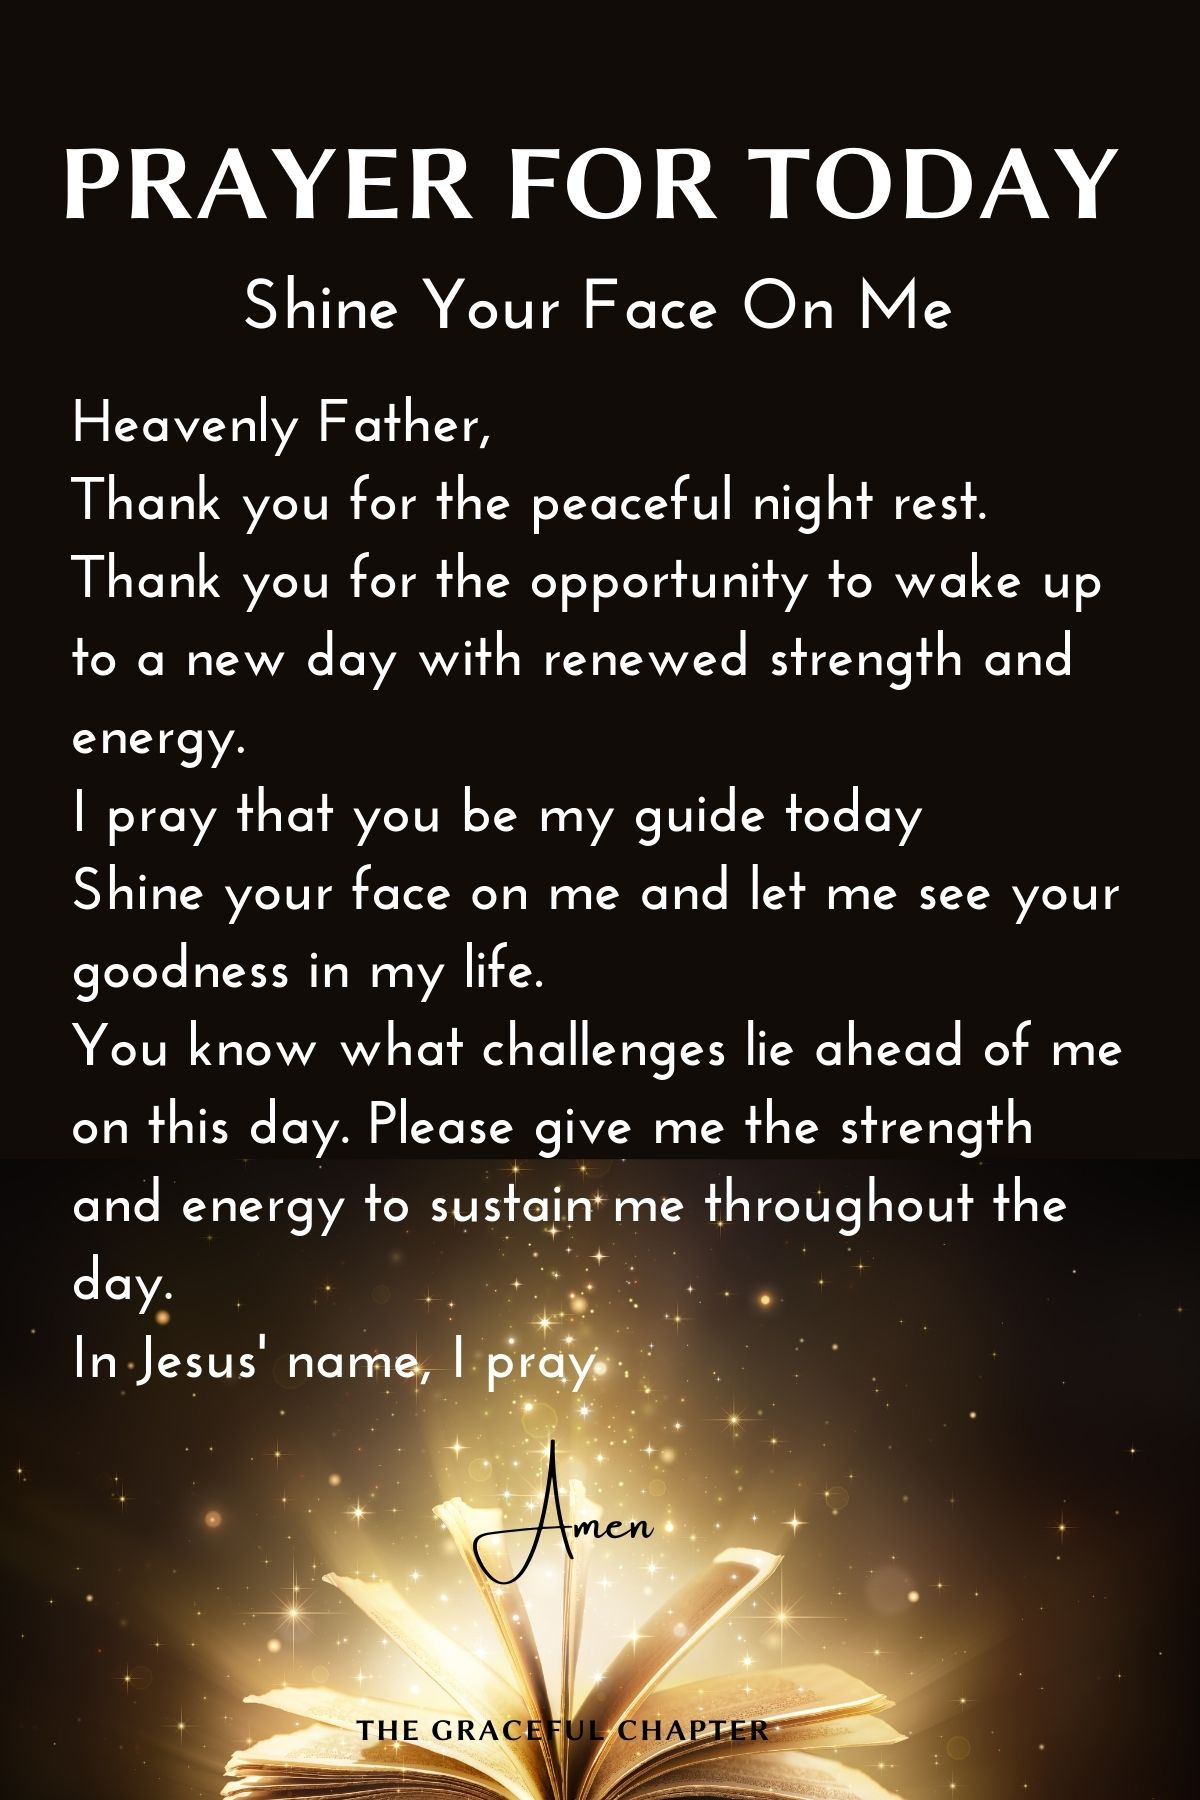 Prayers for today - Shine your face on me